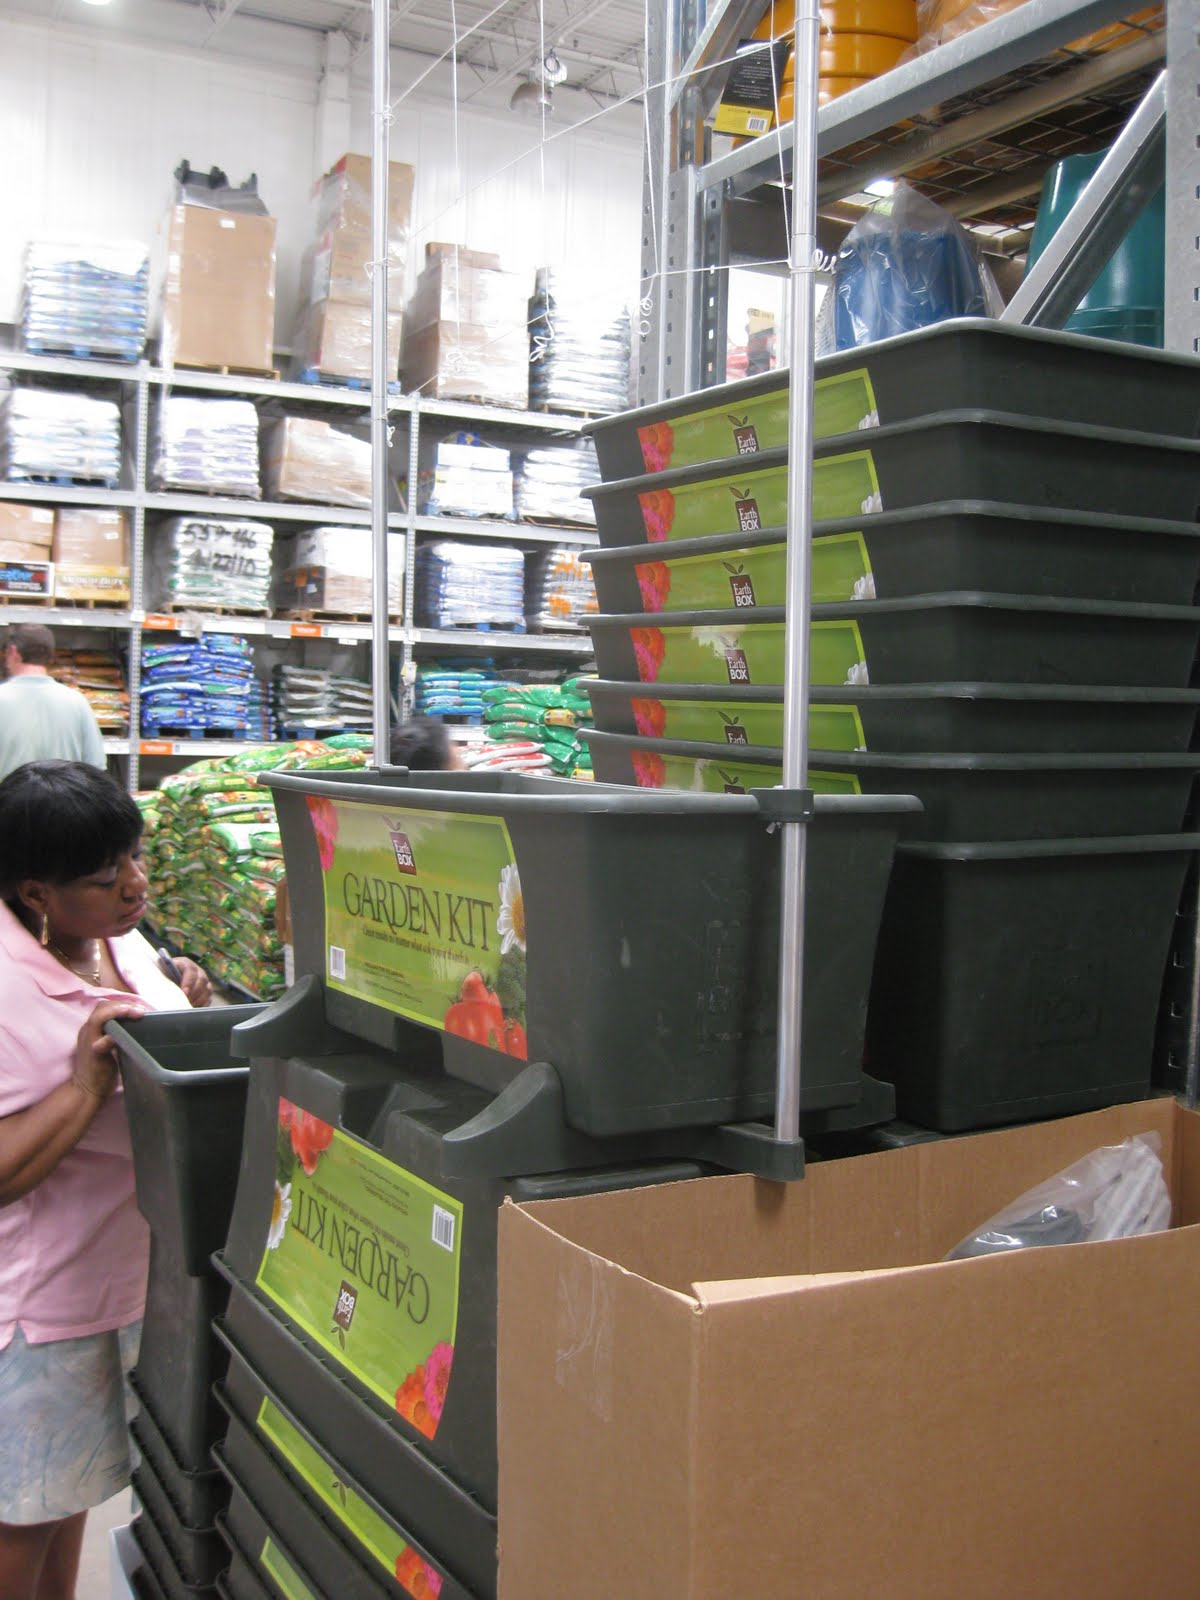 The ultimate growing system: The EarthBox ® gardening system! A great value—you name it, you can grow it! Poor soil conditions and small backyards are no .